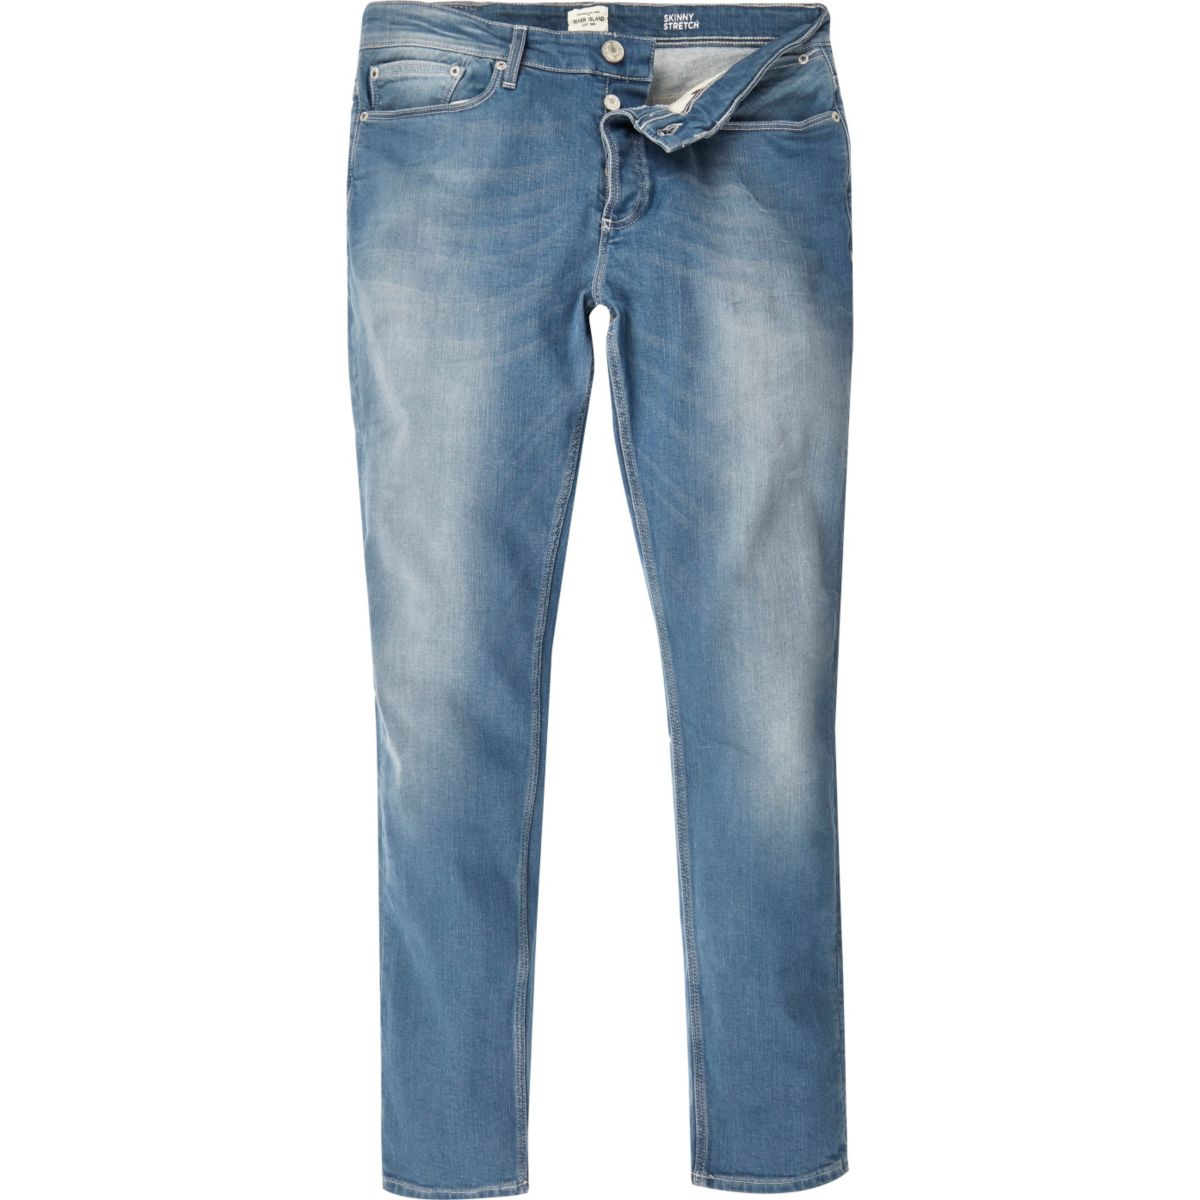 Sid – Skinny Stretch Jeans in mittlerer Waschung